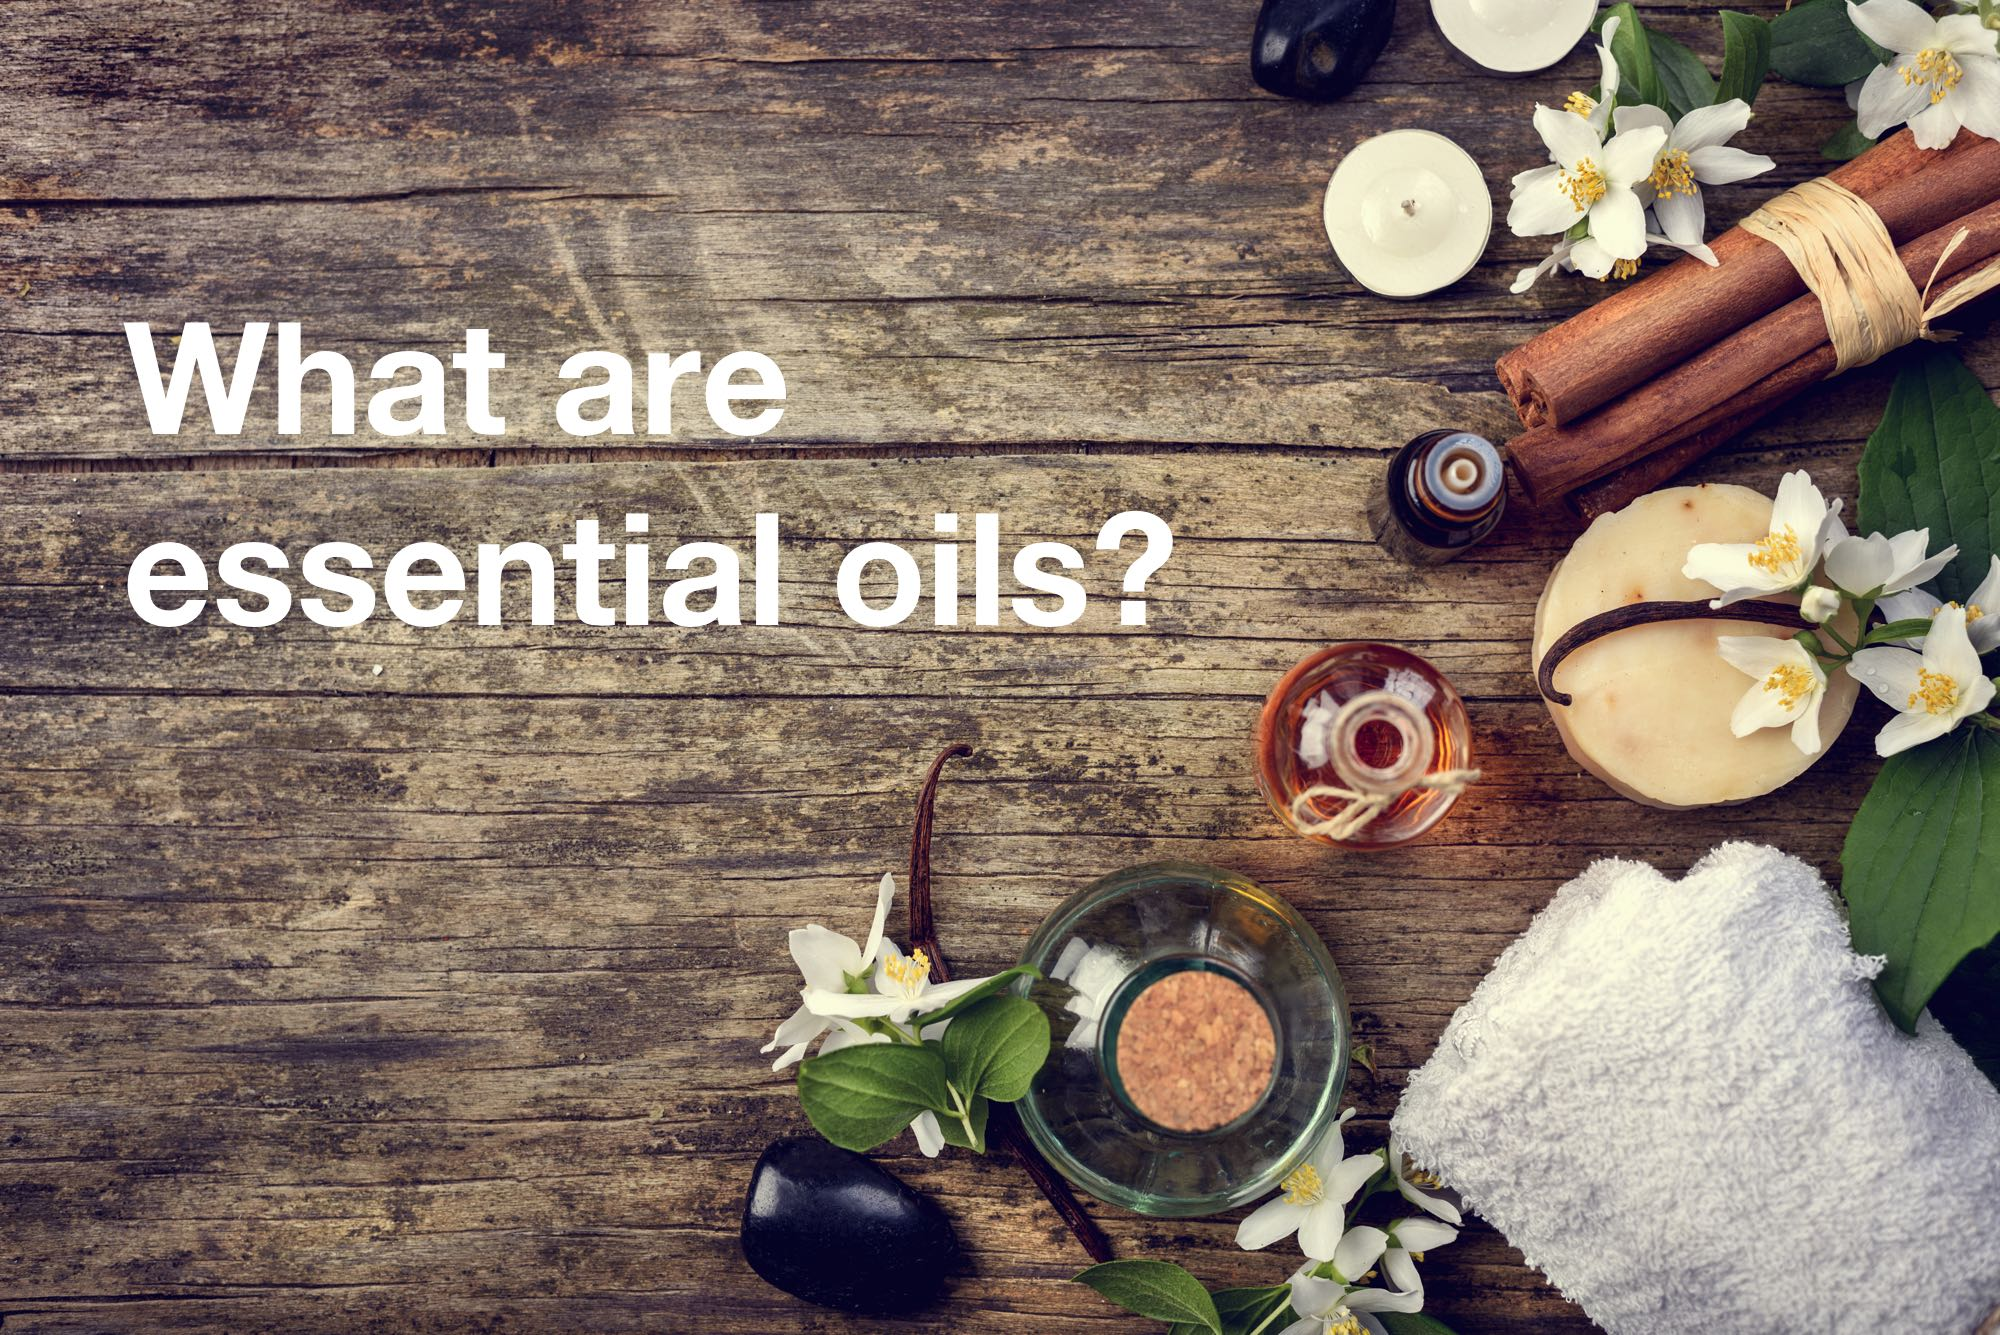 A display of essential oil ingredients with an overlay saying: what are essential oils